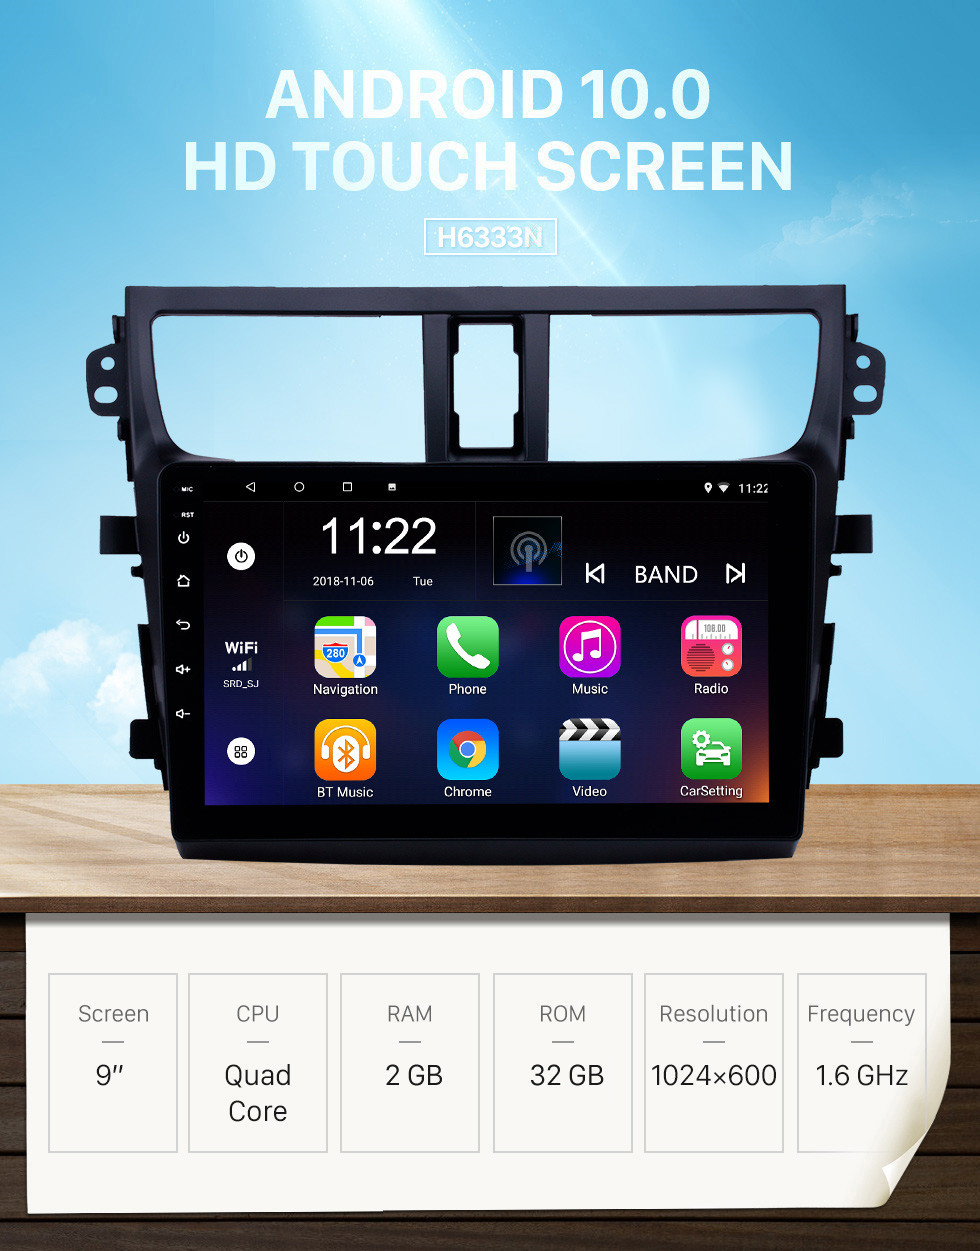 Seicane 2015-2018 Suzuki Celerio Android 10.0 HD Touchscreen 9 inch Head Unit Bluetooth GPS Navigation Radio with AUX support OBD2 SWC Carplay